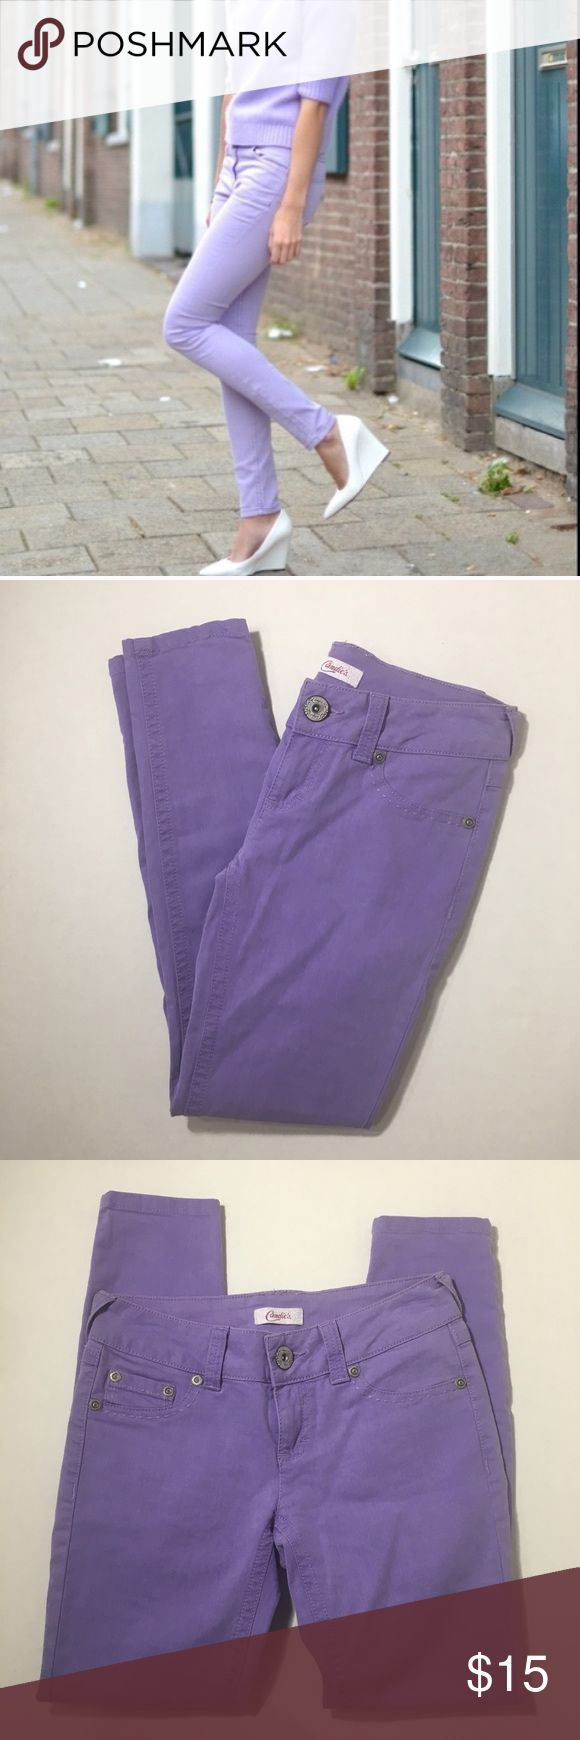 NWOT Candies Purple Skinny Jeans Pants Size 0 New without tags, never worn. Fit to the ankle, skinny style. Cute thick stitching. Perfect color for spring. Size 0. Candie's Jeans Skinny